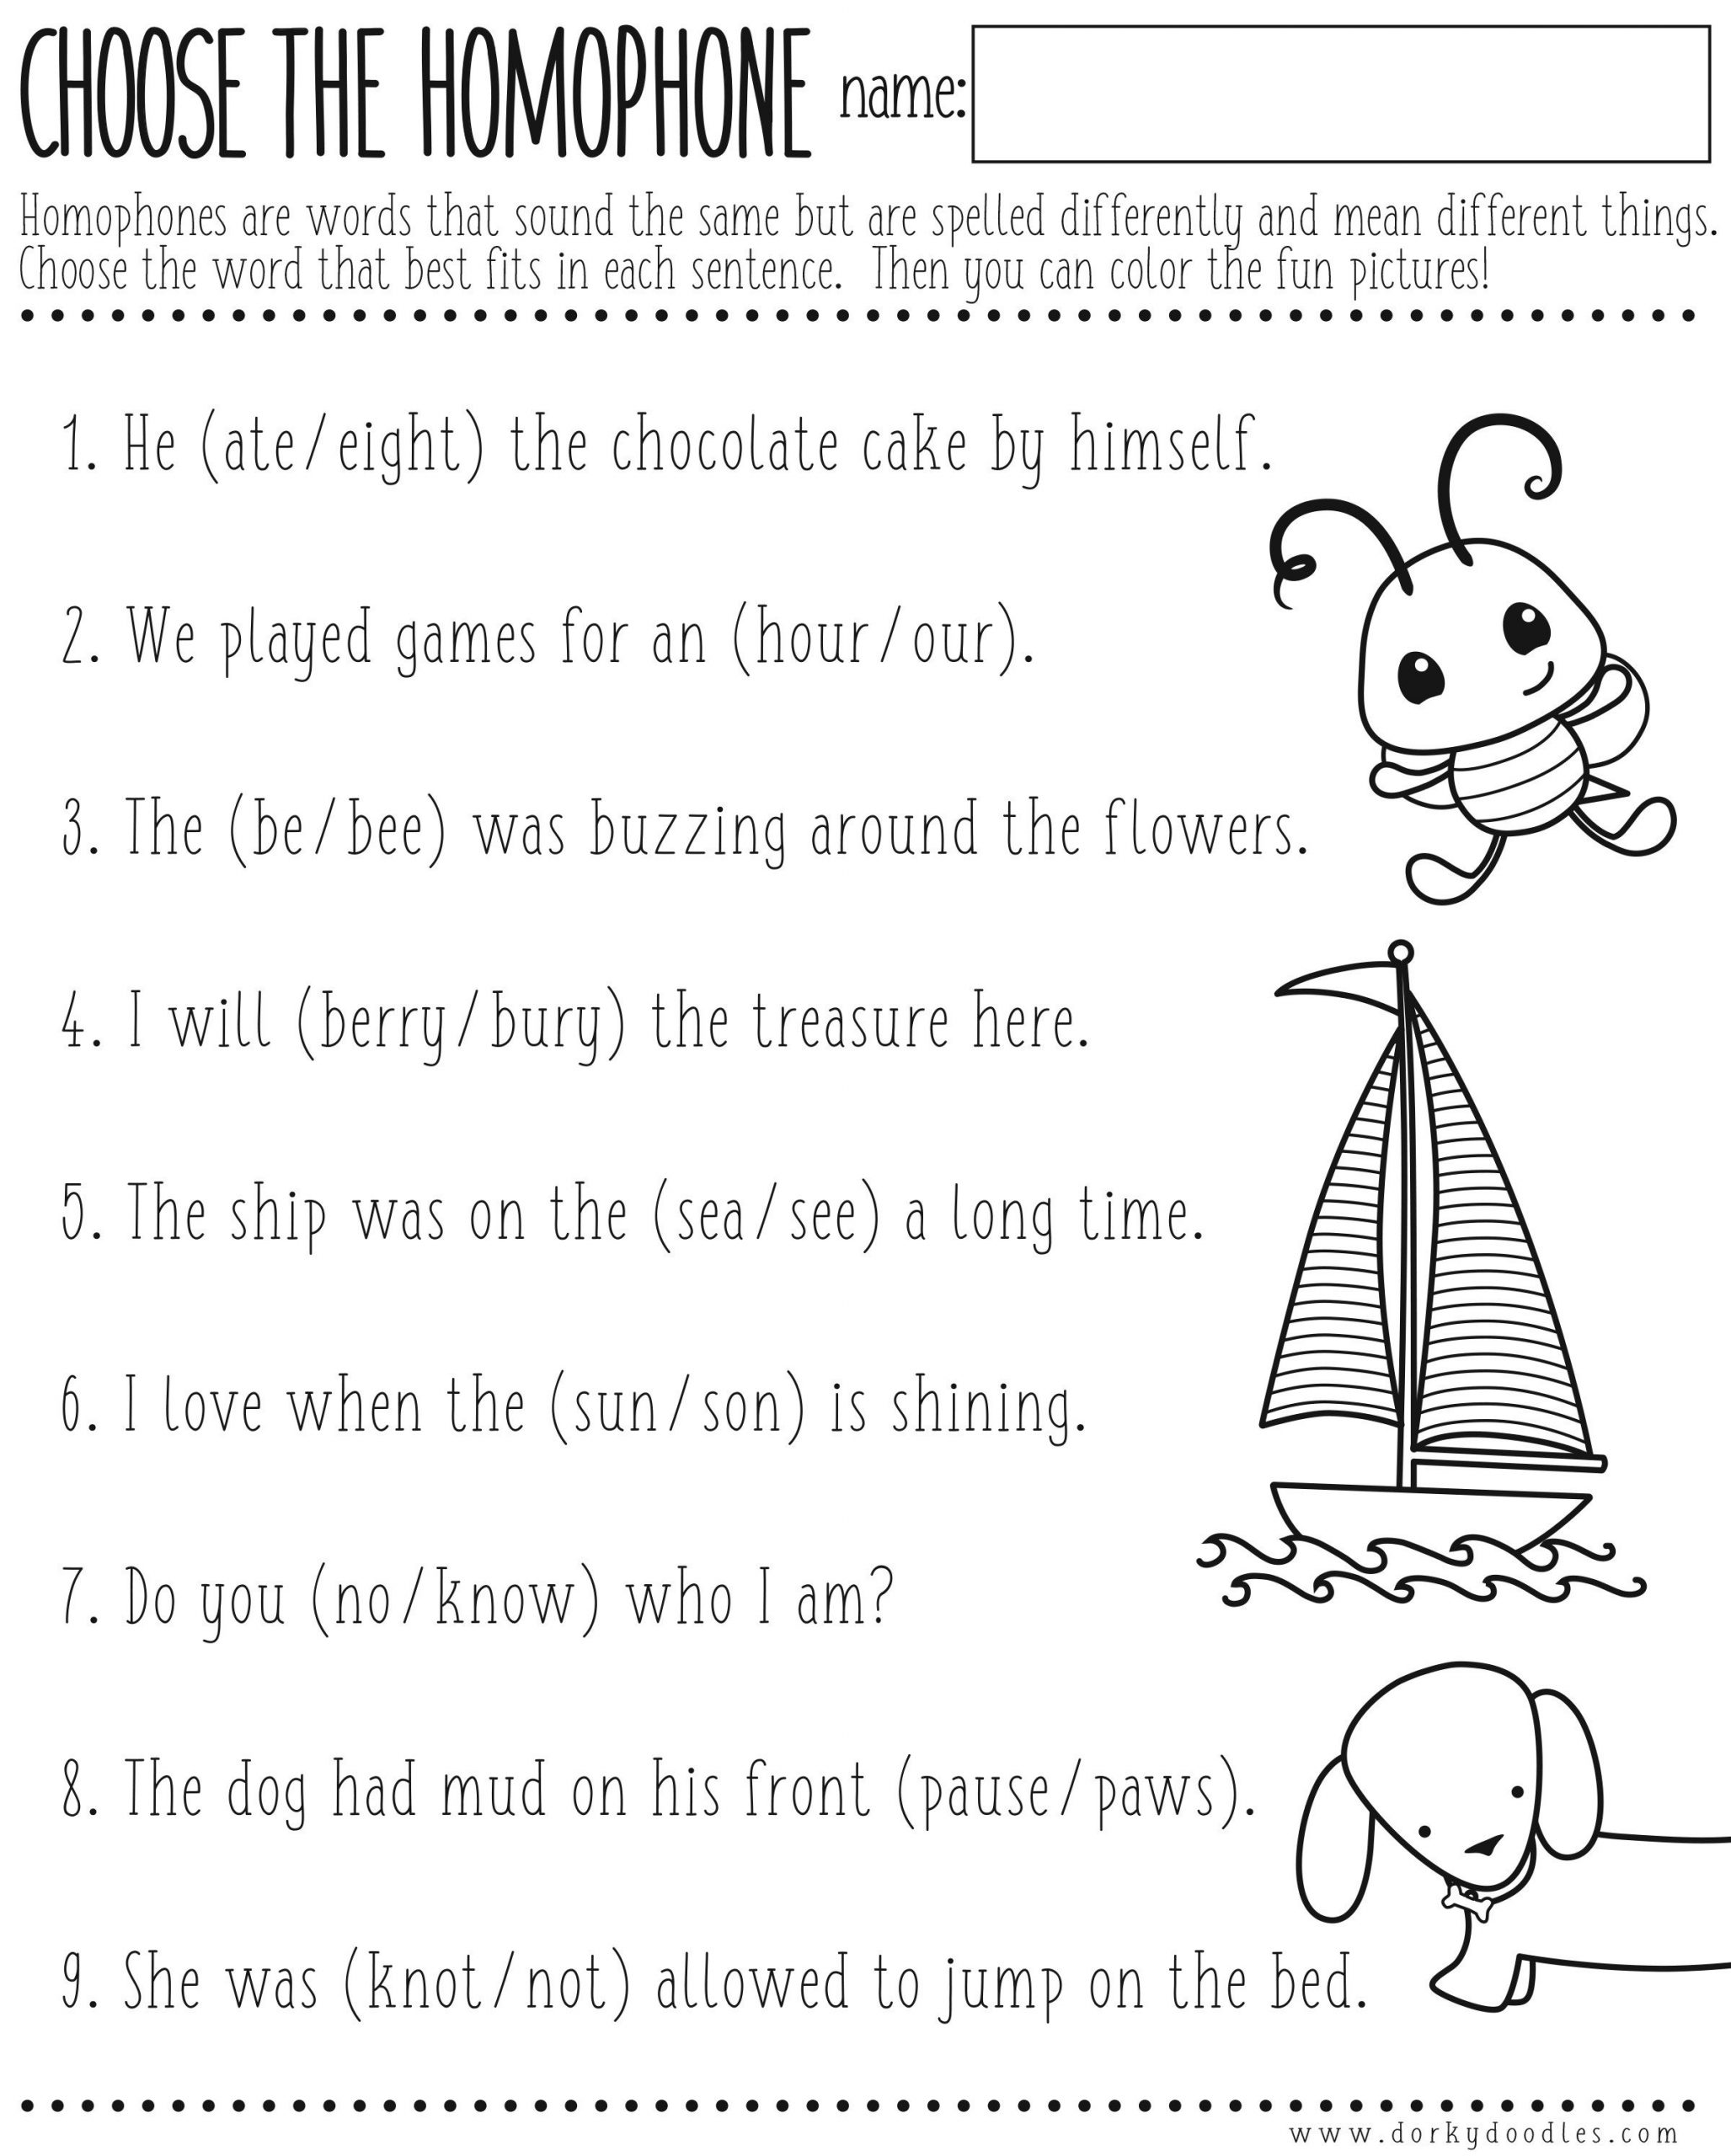 Free Printable Homophone Worksheets Homophones Worksheet Printable – Dorky Doodles